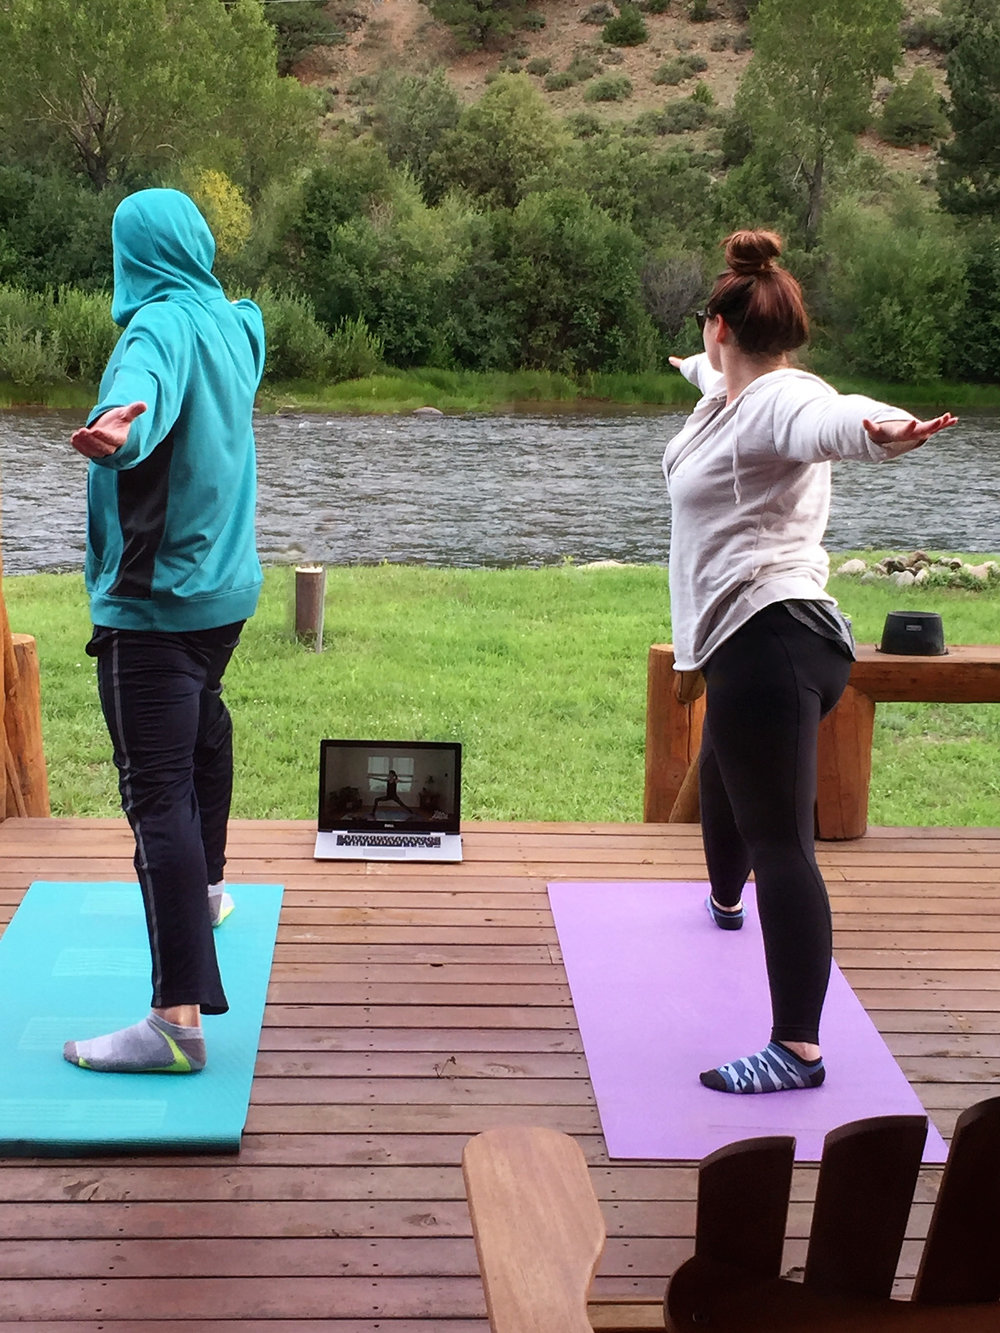 And sometimes you get to go to Colorado and do yoga outside by the river with your partner...